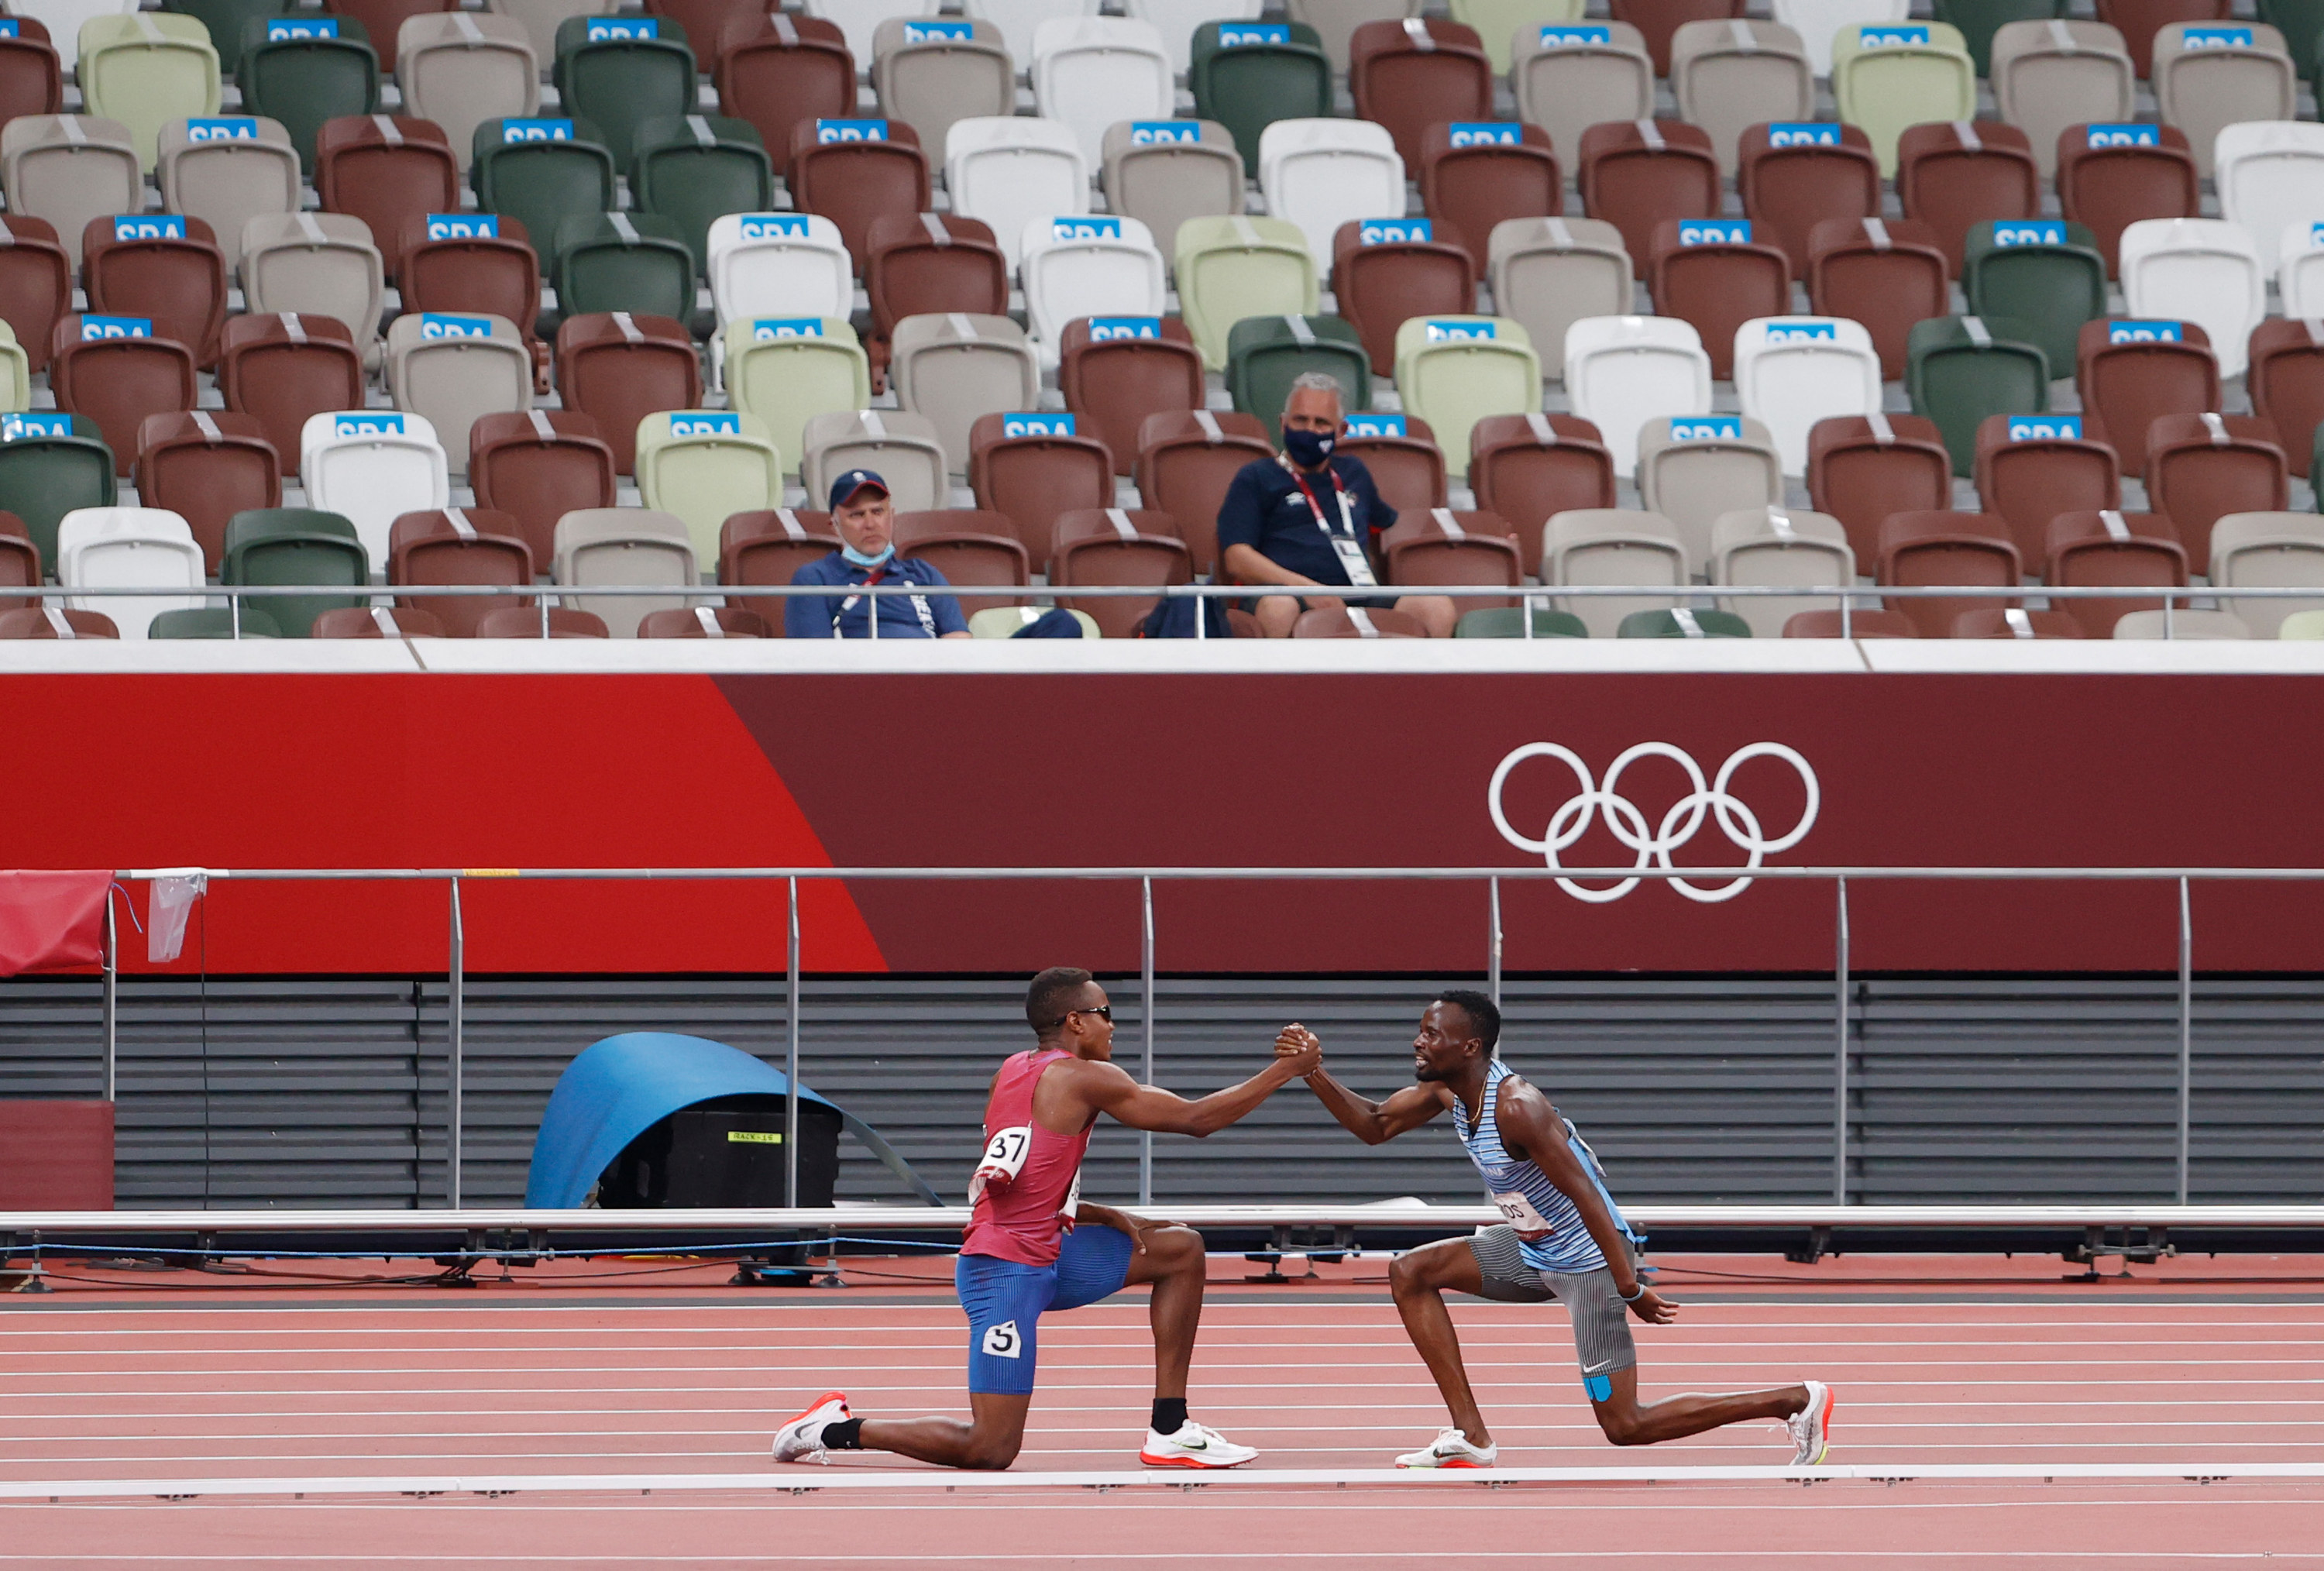 Isaiah and Nijel kneel on one knee and clasp hands on the track